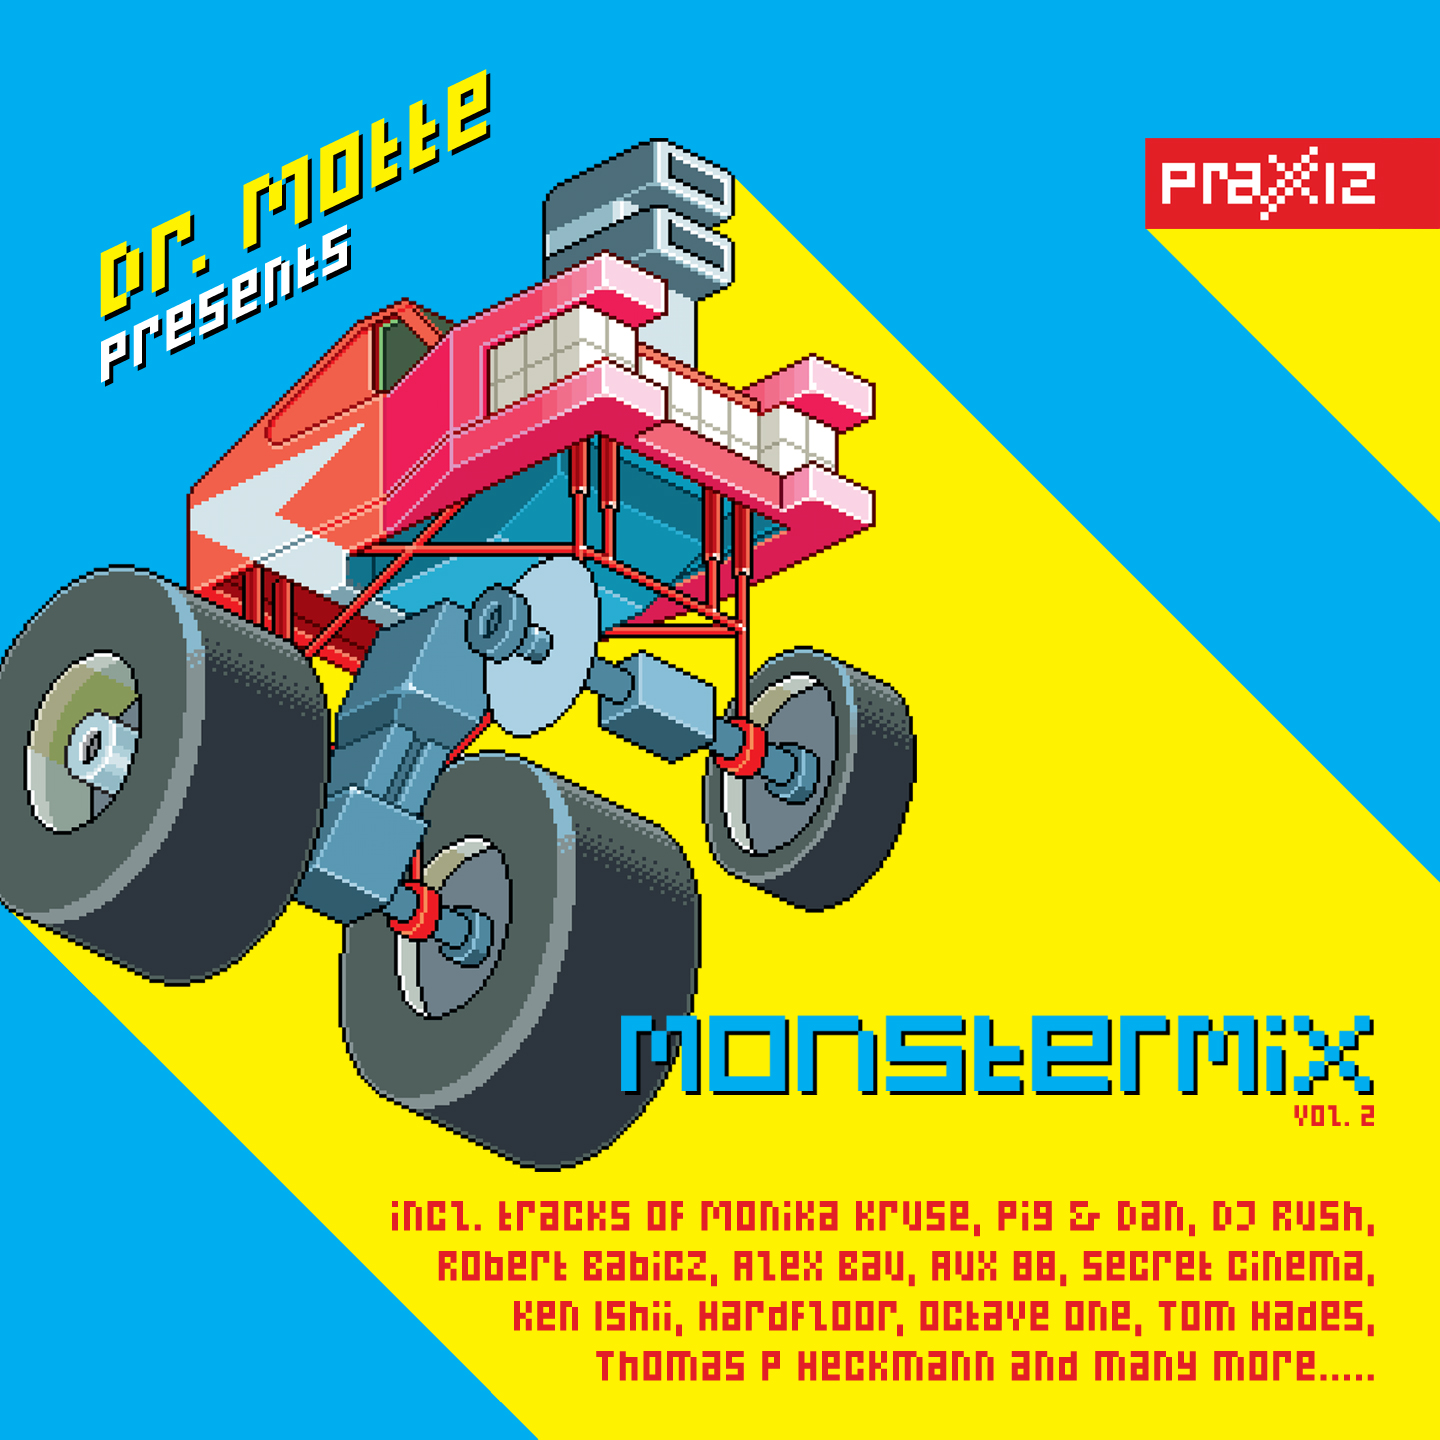 MONSTERMIX Vol. 2